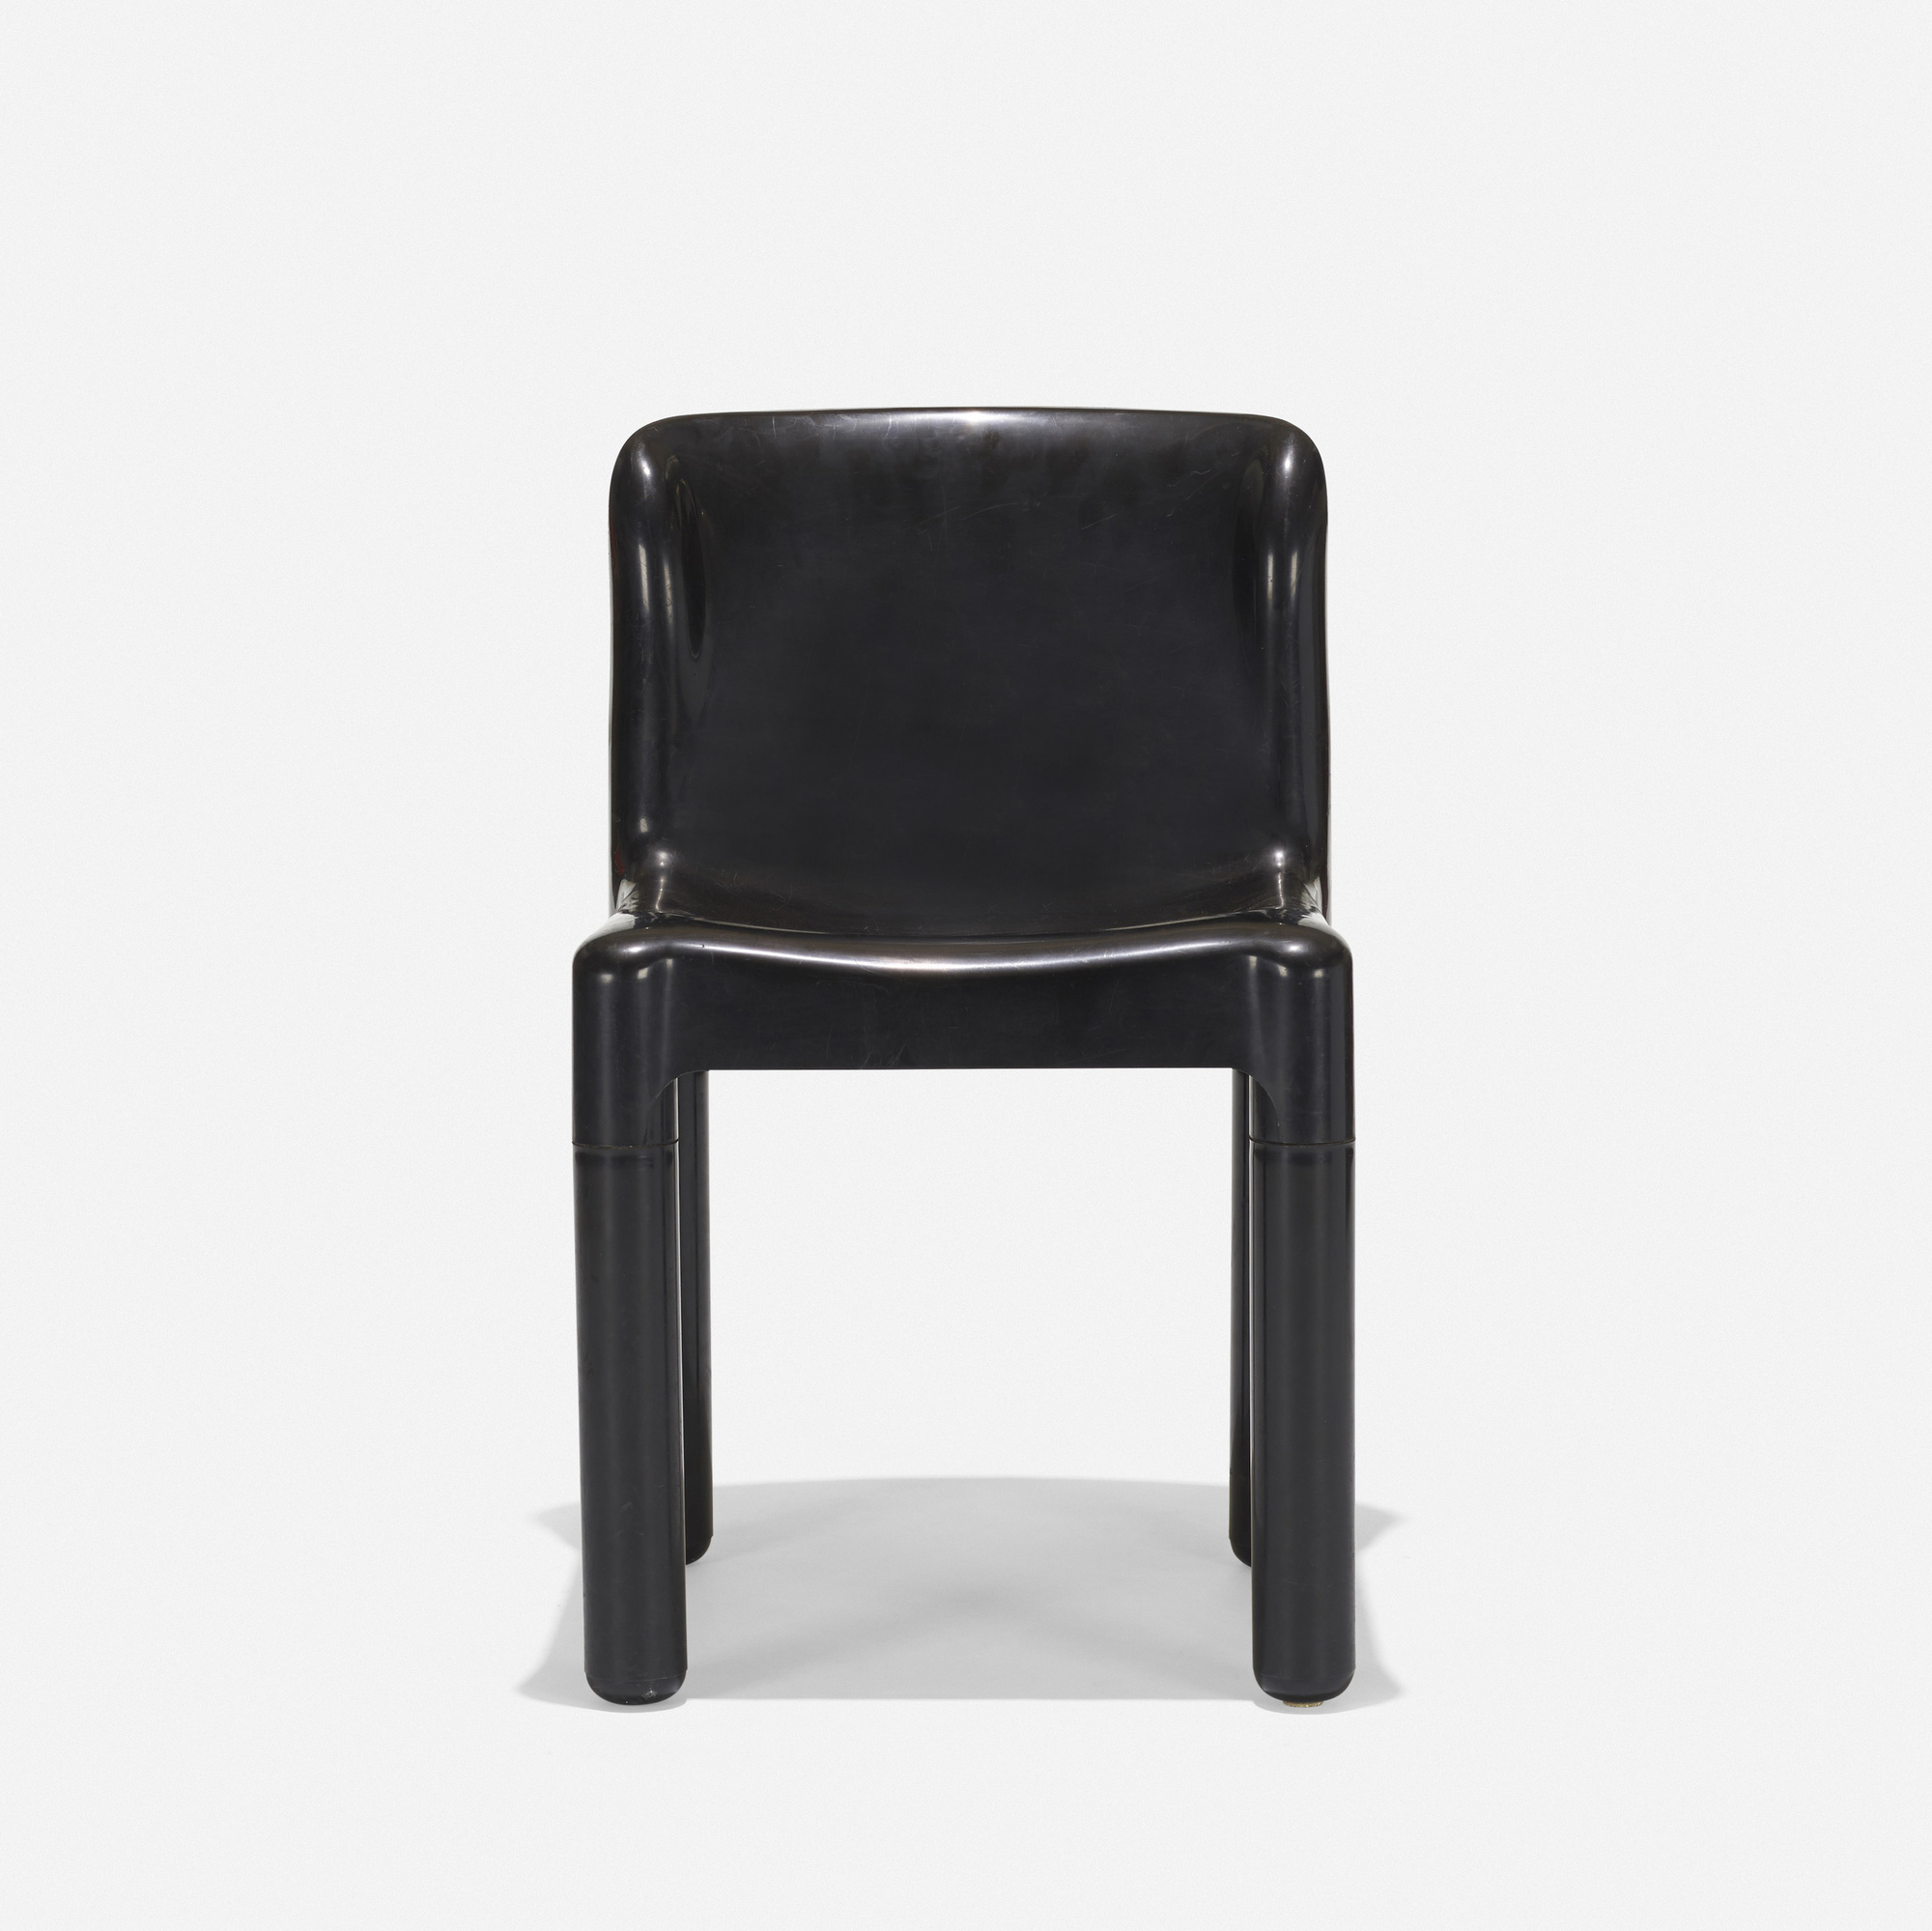 155: Carlo Bartoli / 4875 chair (2 of 3)